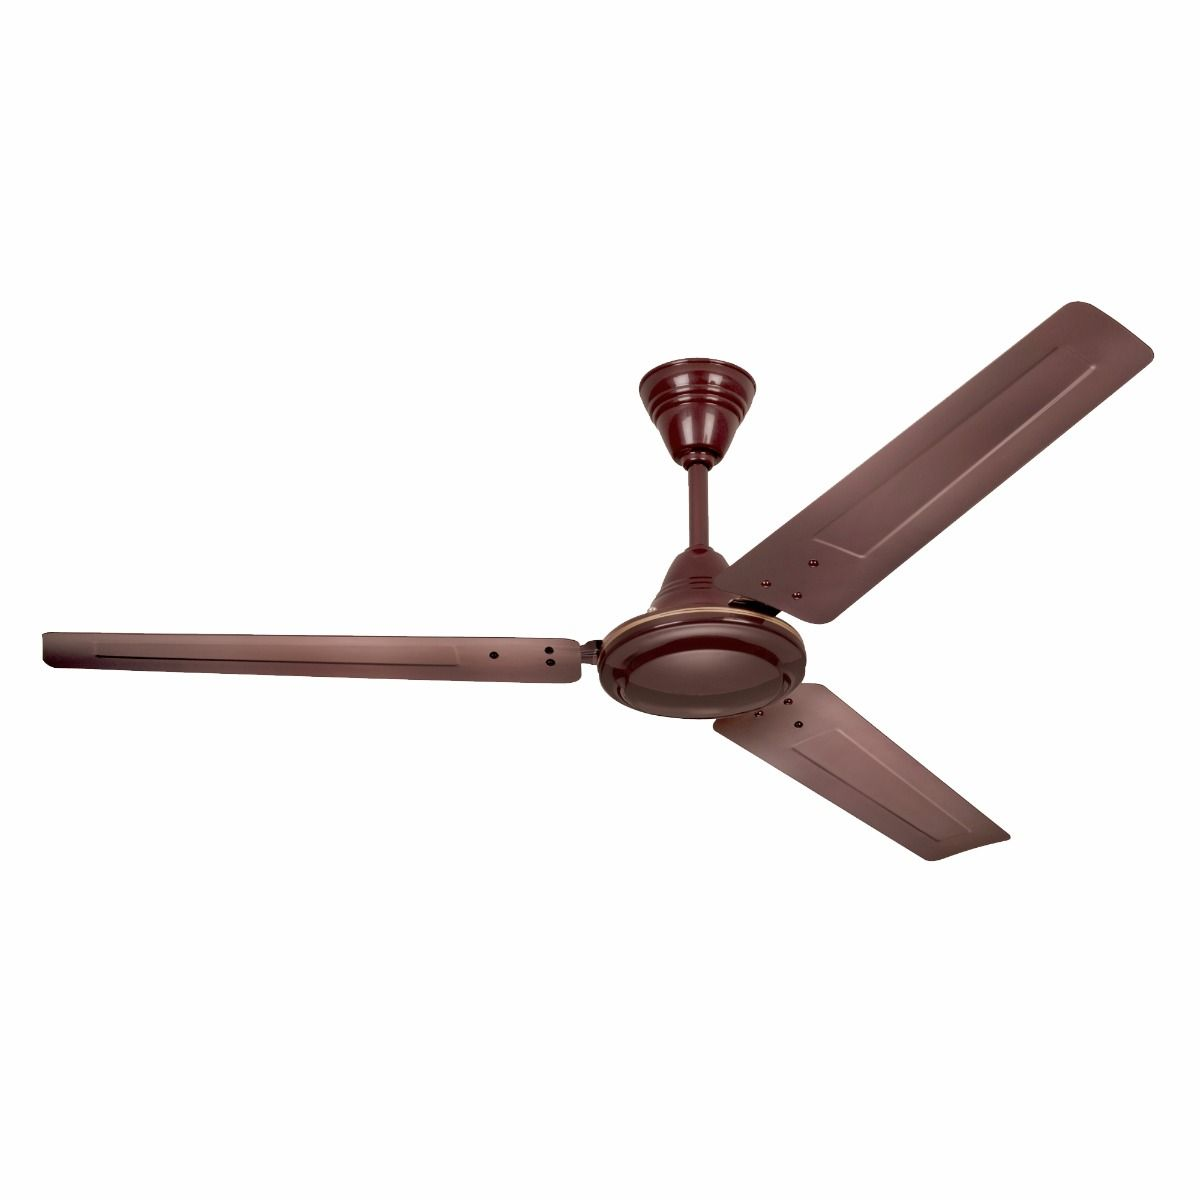 Syska SFP1200 Maxair 1200mm 3-Blade Ceiling Fan